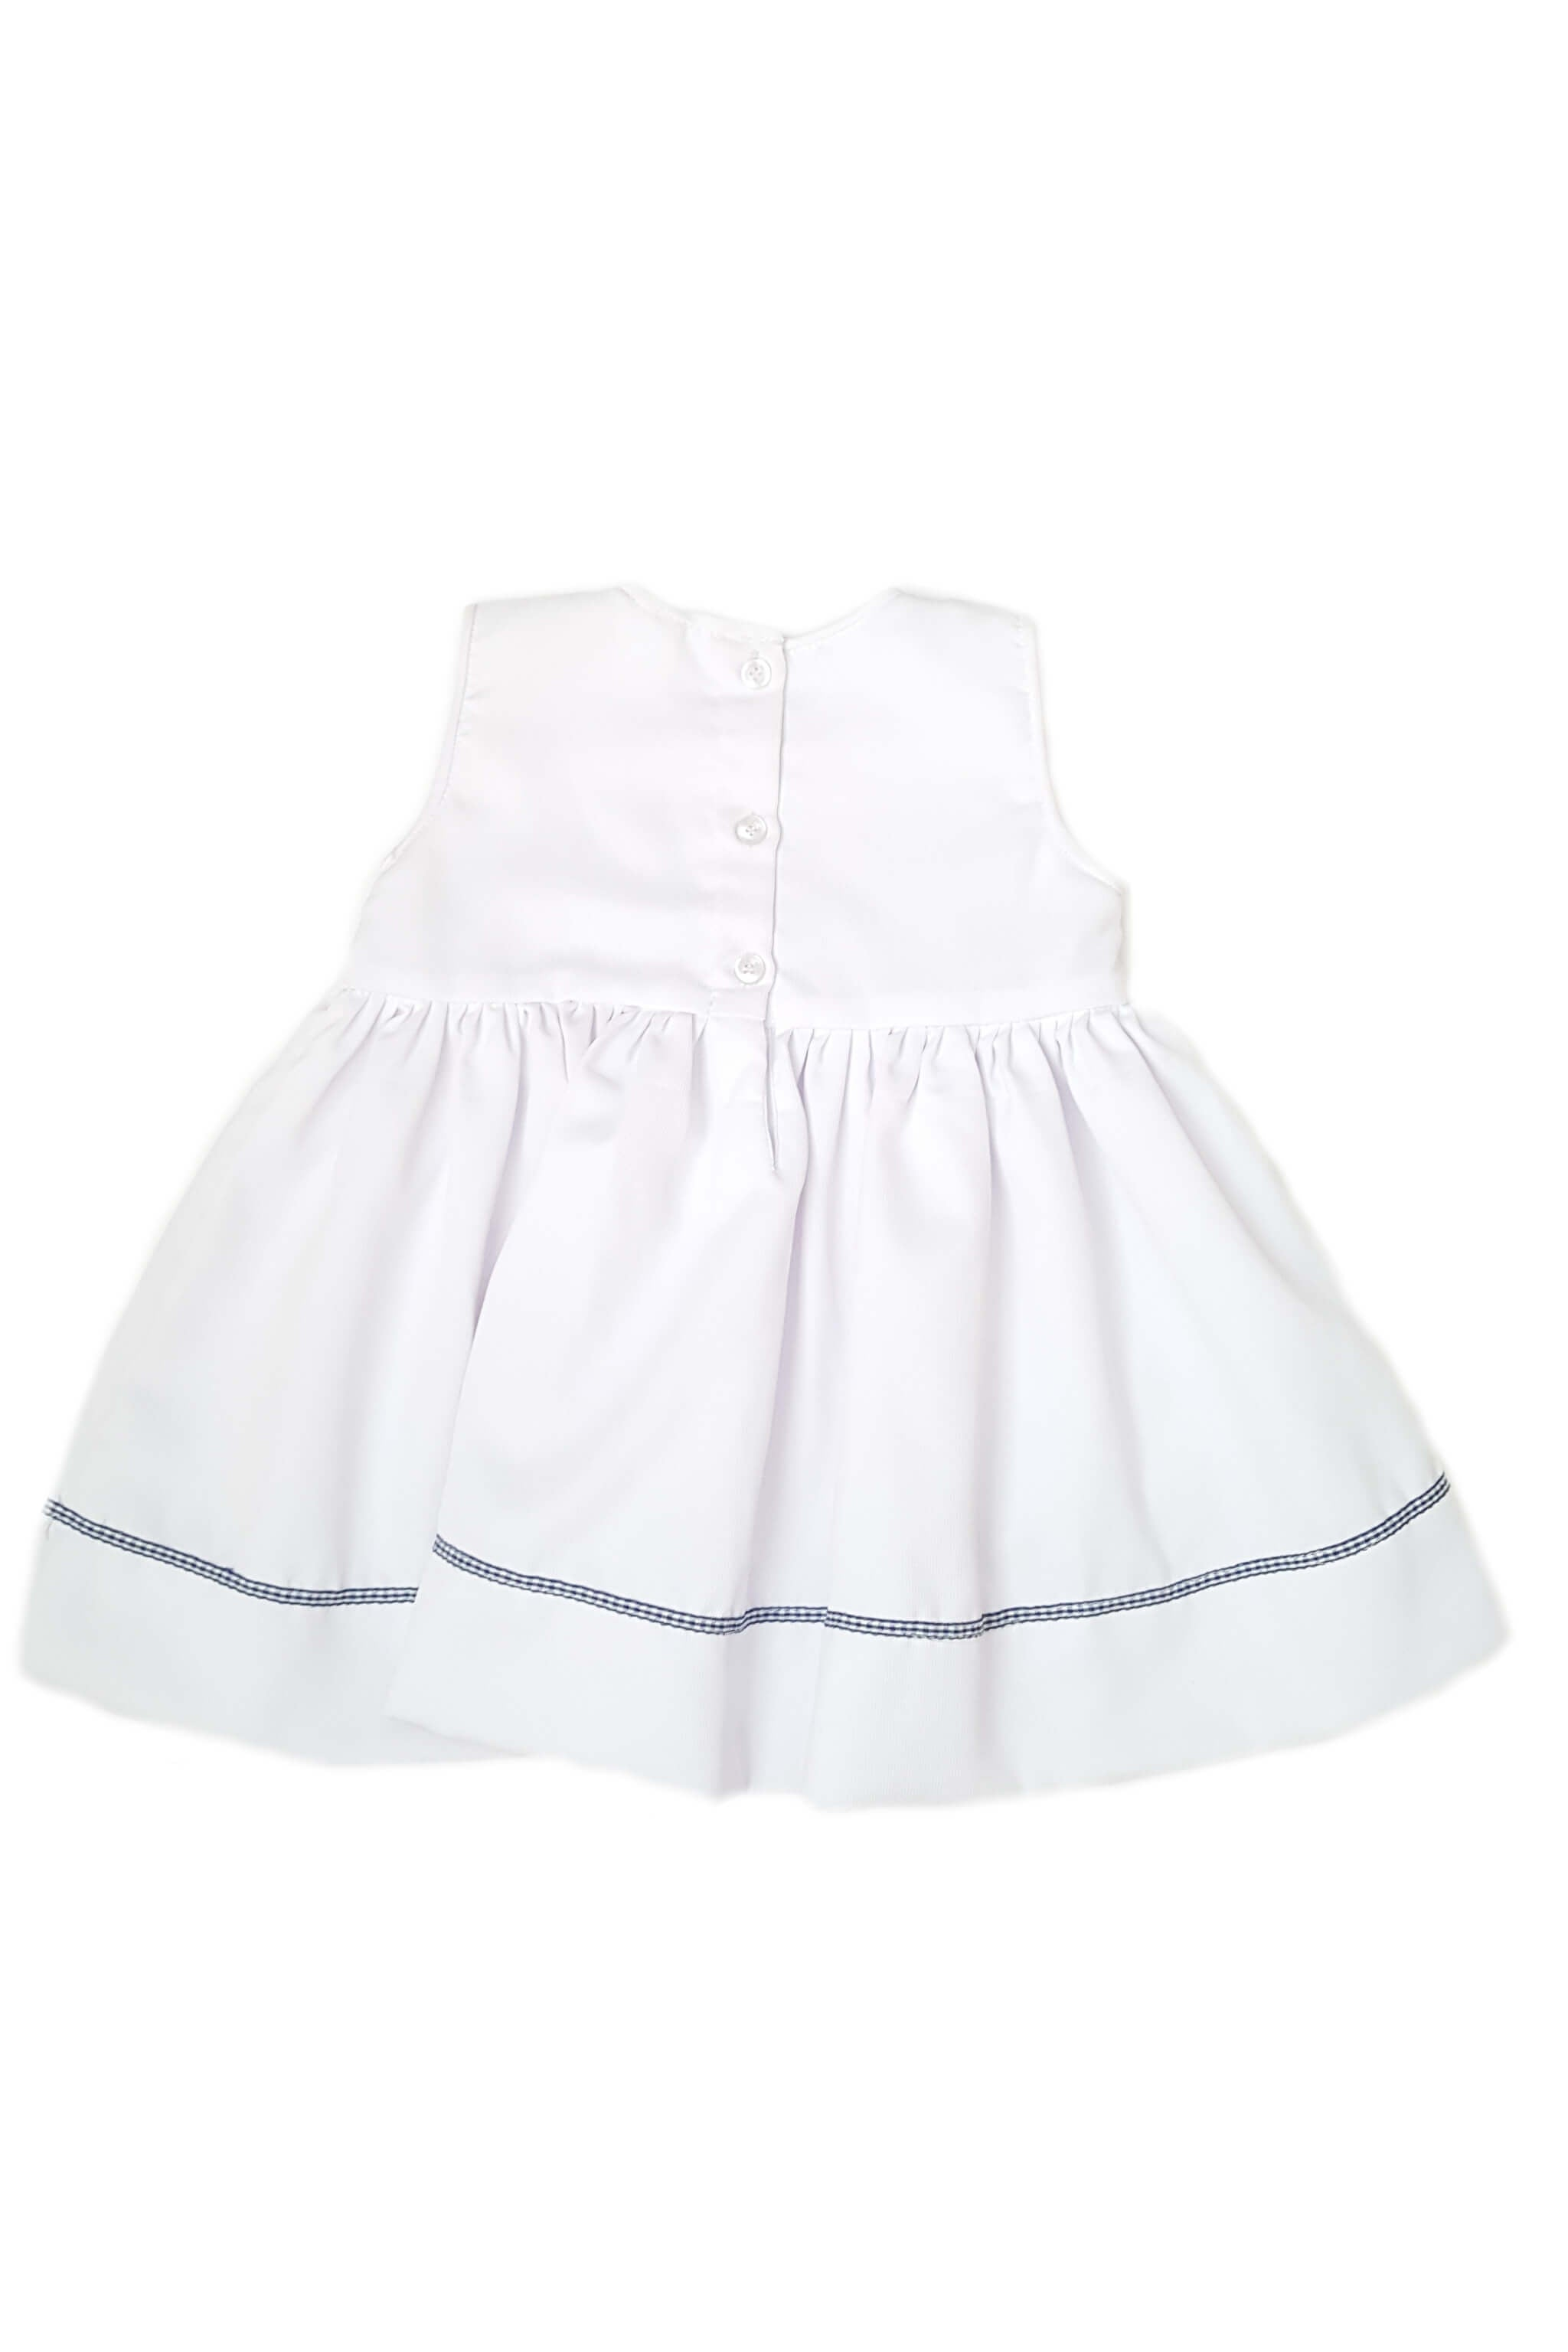 Back of white dress with gingham bow and royal blue and azure blue smocked bodice with button back opening for baby girls